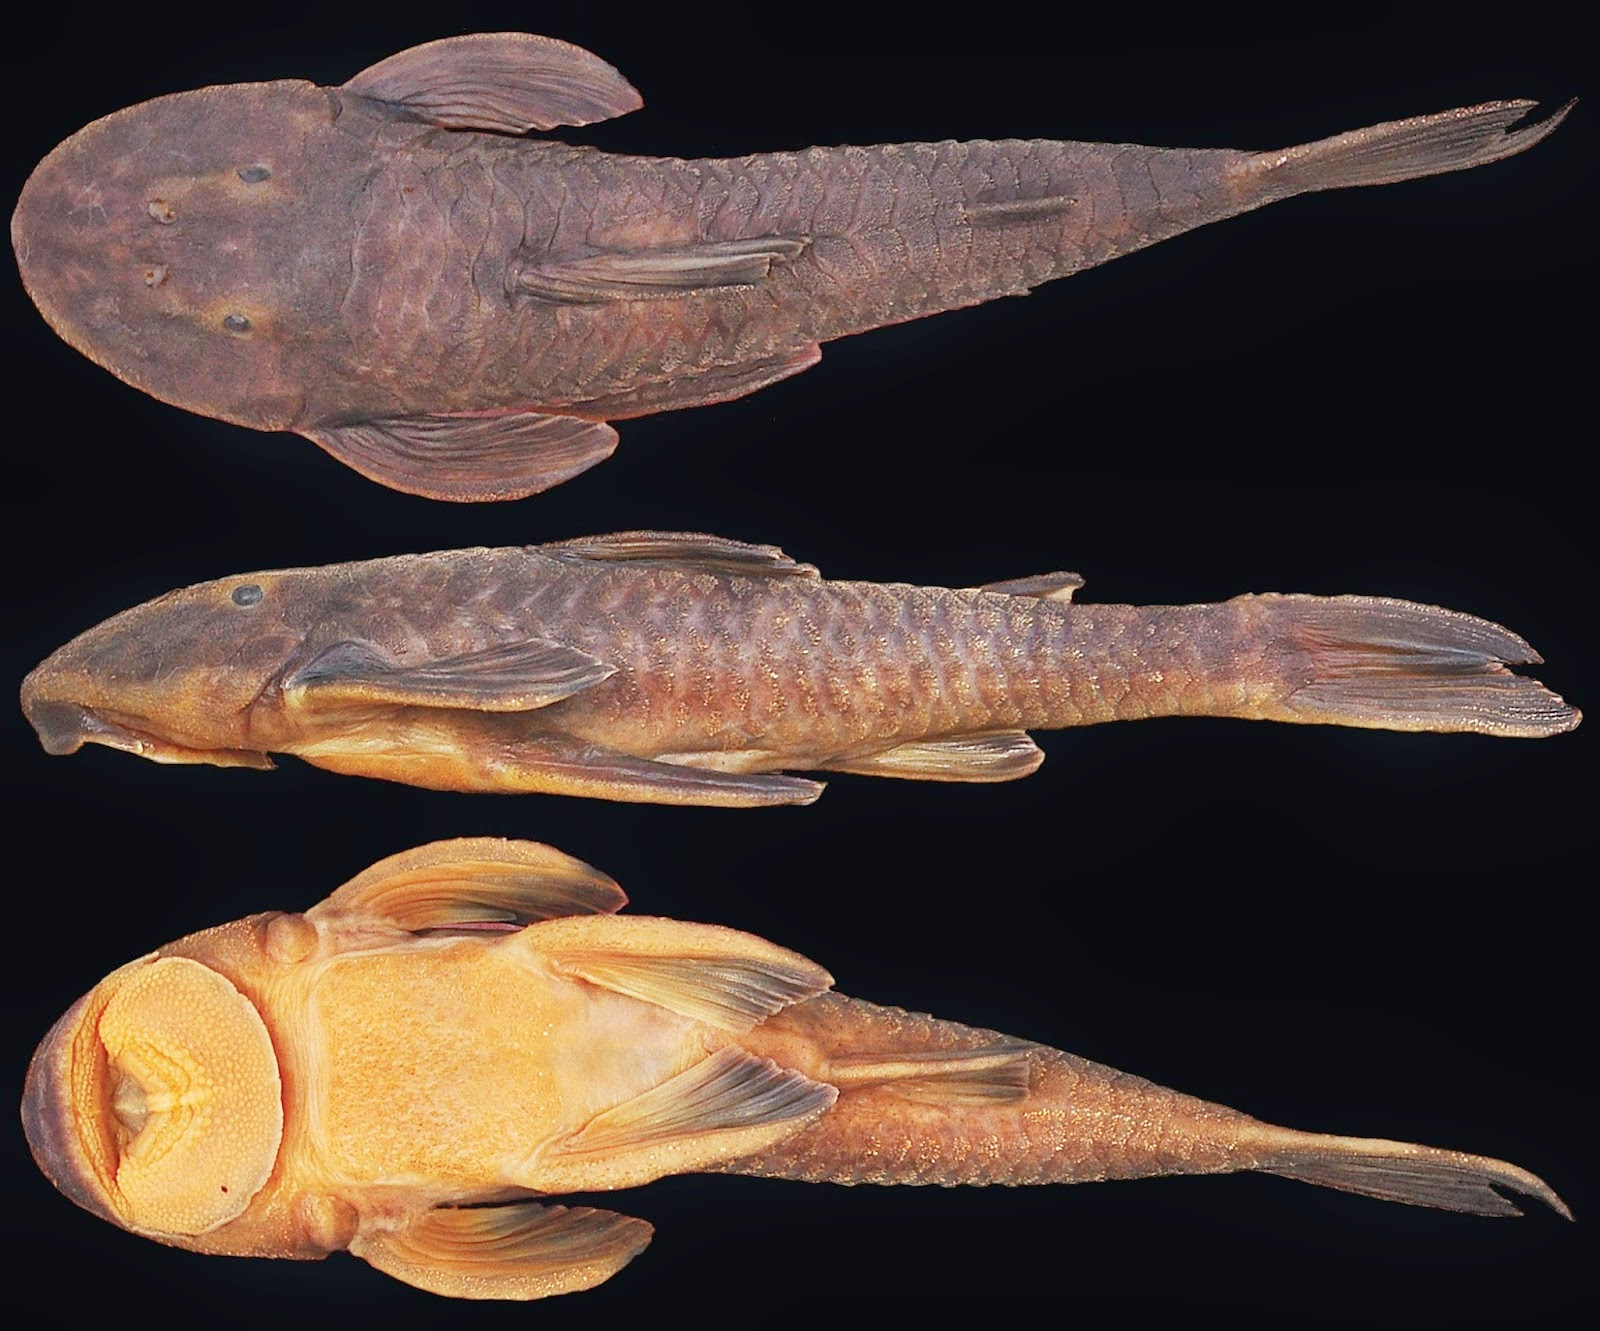 http://sciencythoughts.blogspot.co.uk/2014/09/a-new-species-of-armoured-catfish-from.html